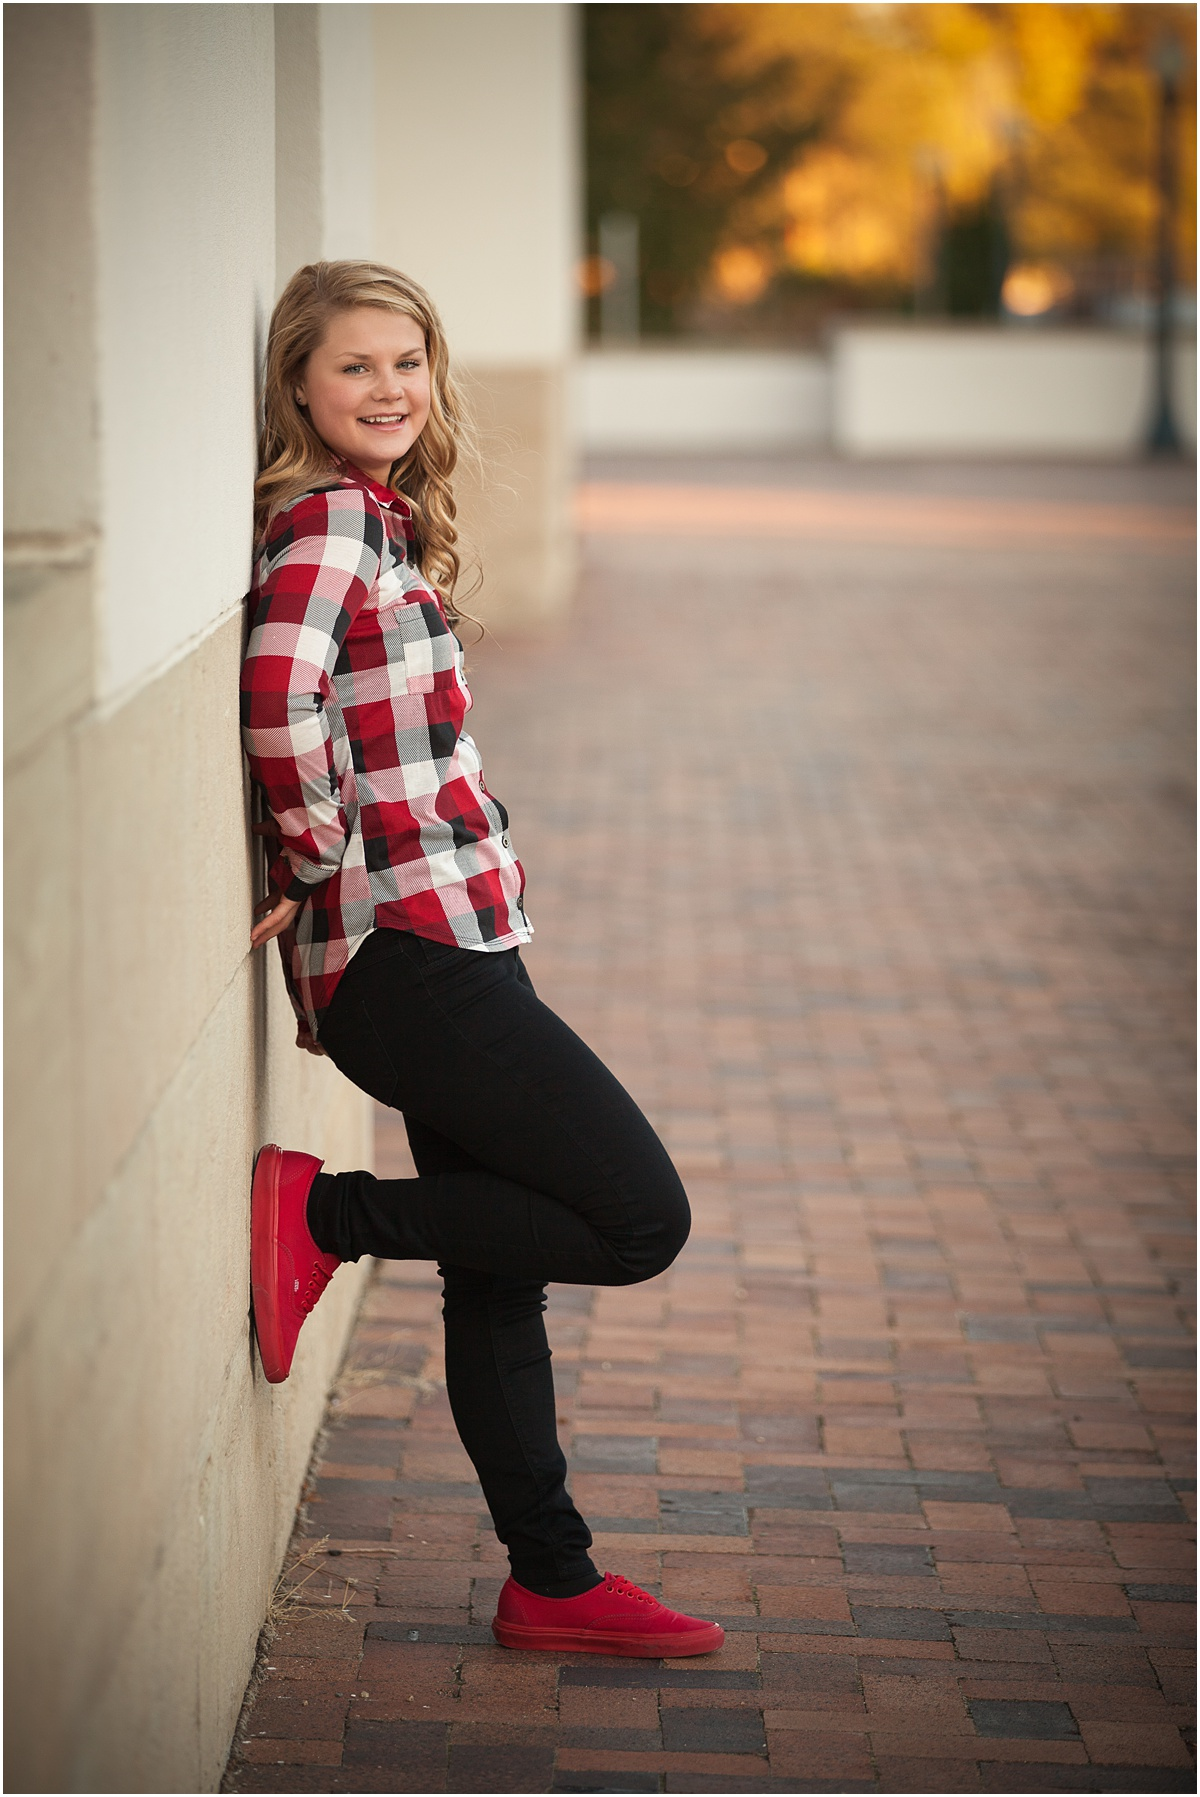 Senior Photography_Meridian Idaho_Boise Idaho_Leah Southwick Photography_0280.jpg